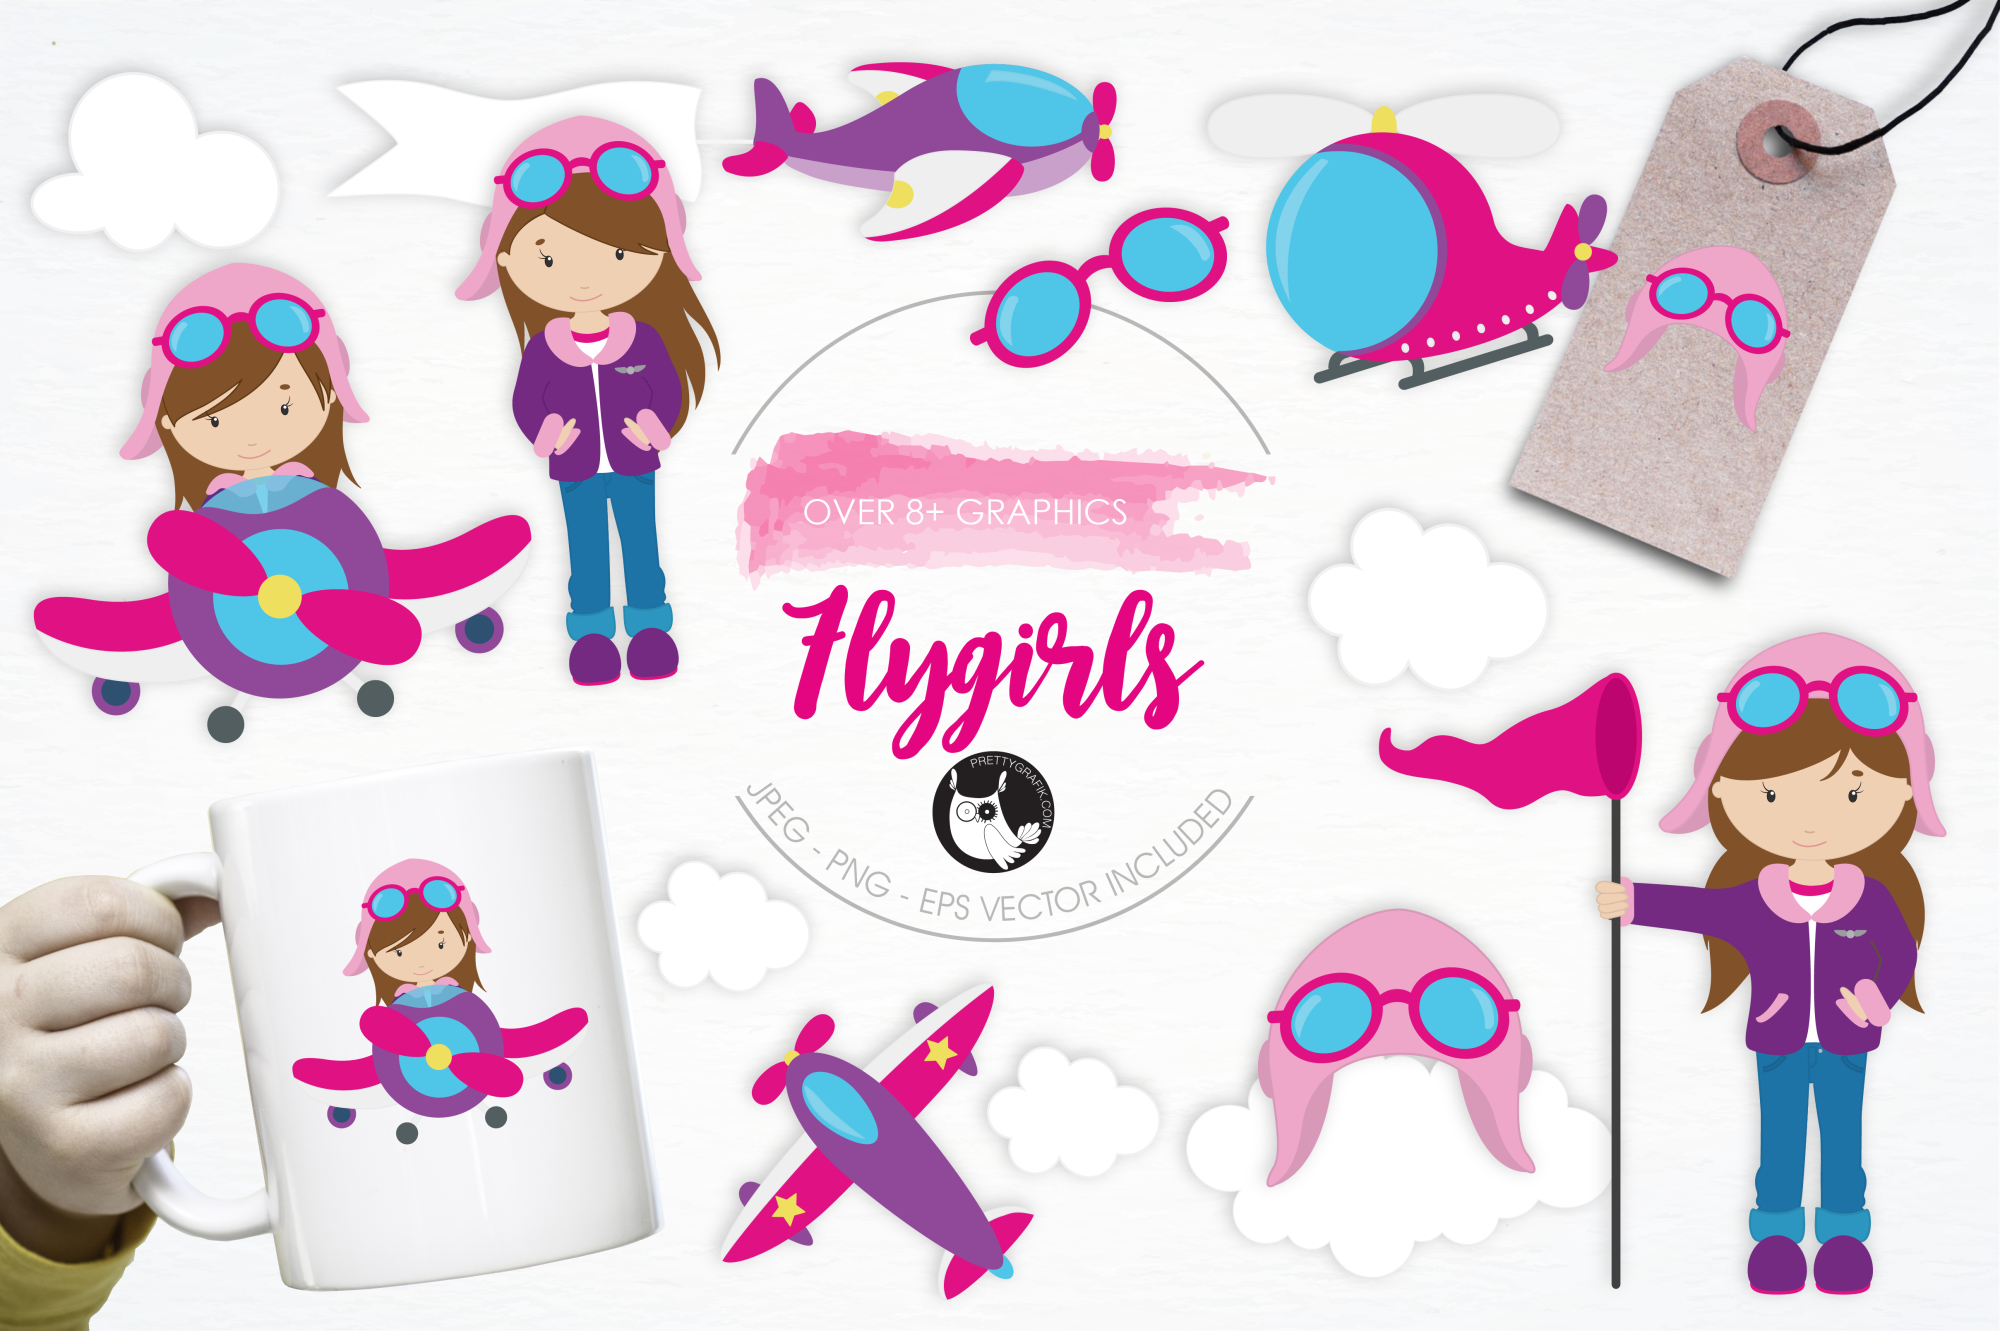 Flygirls graphics and illustrations example image 1